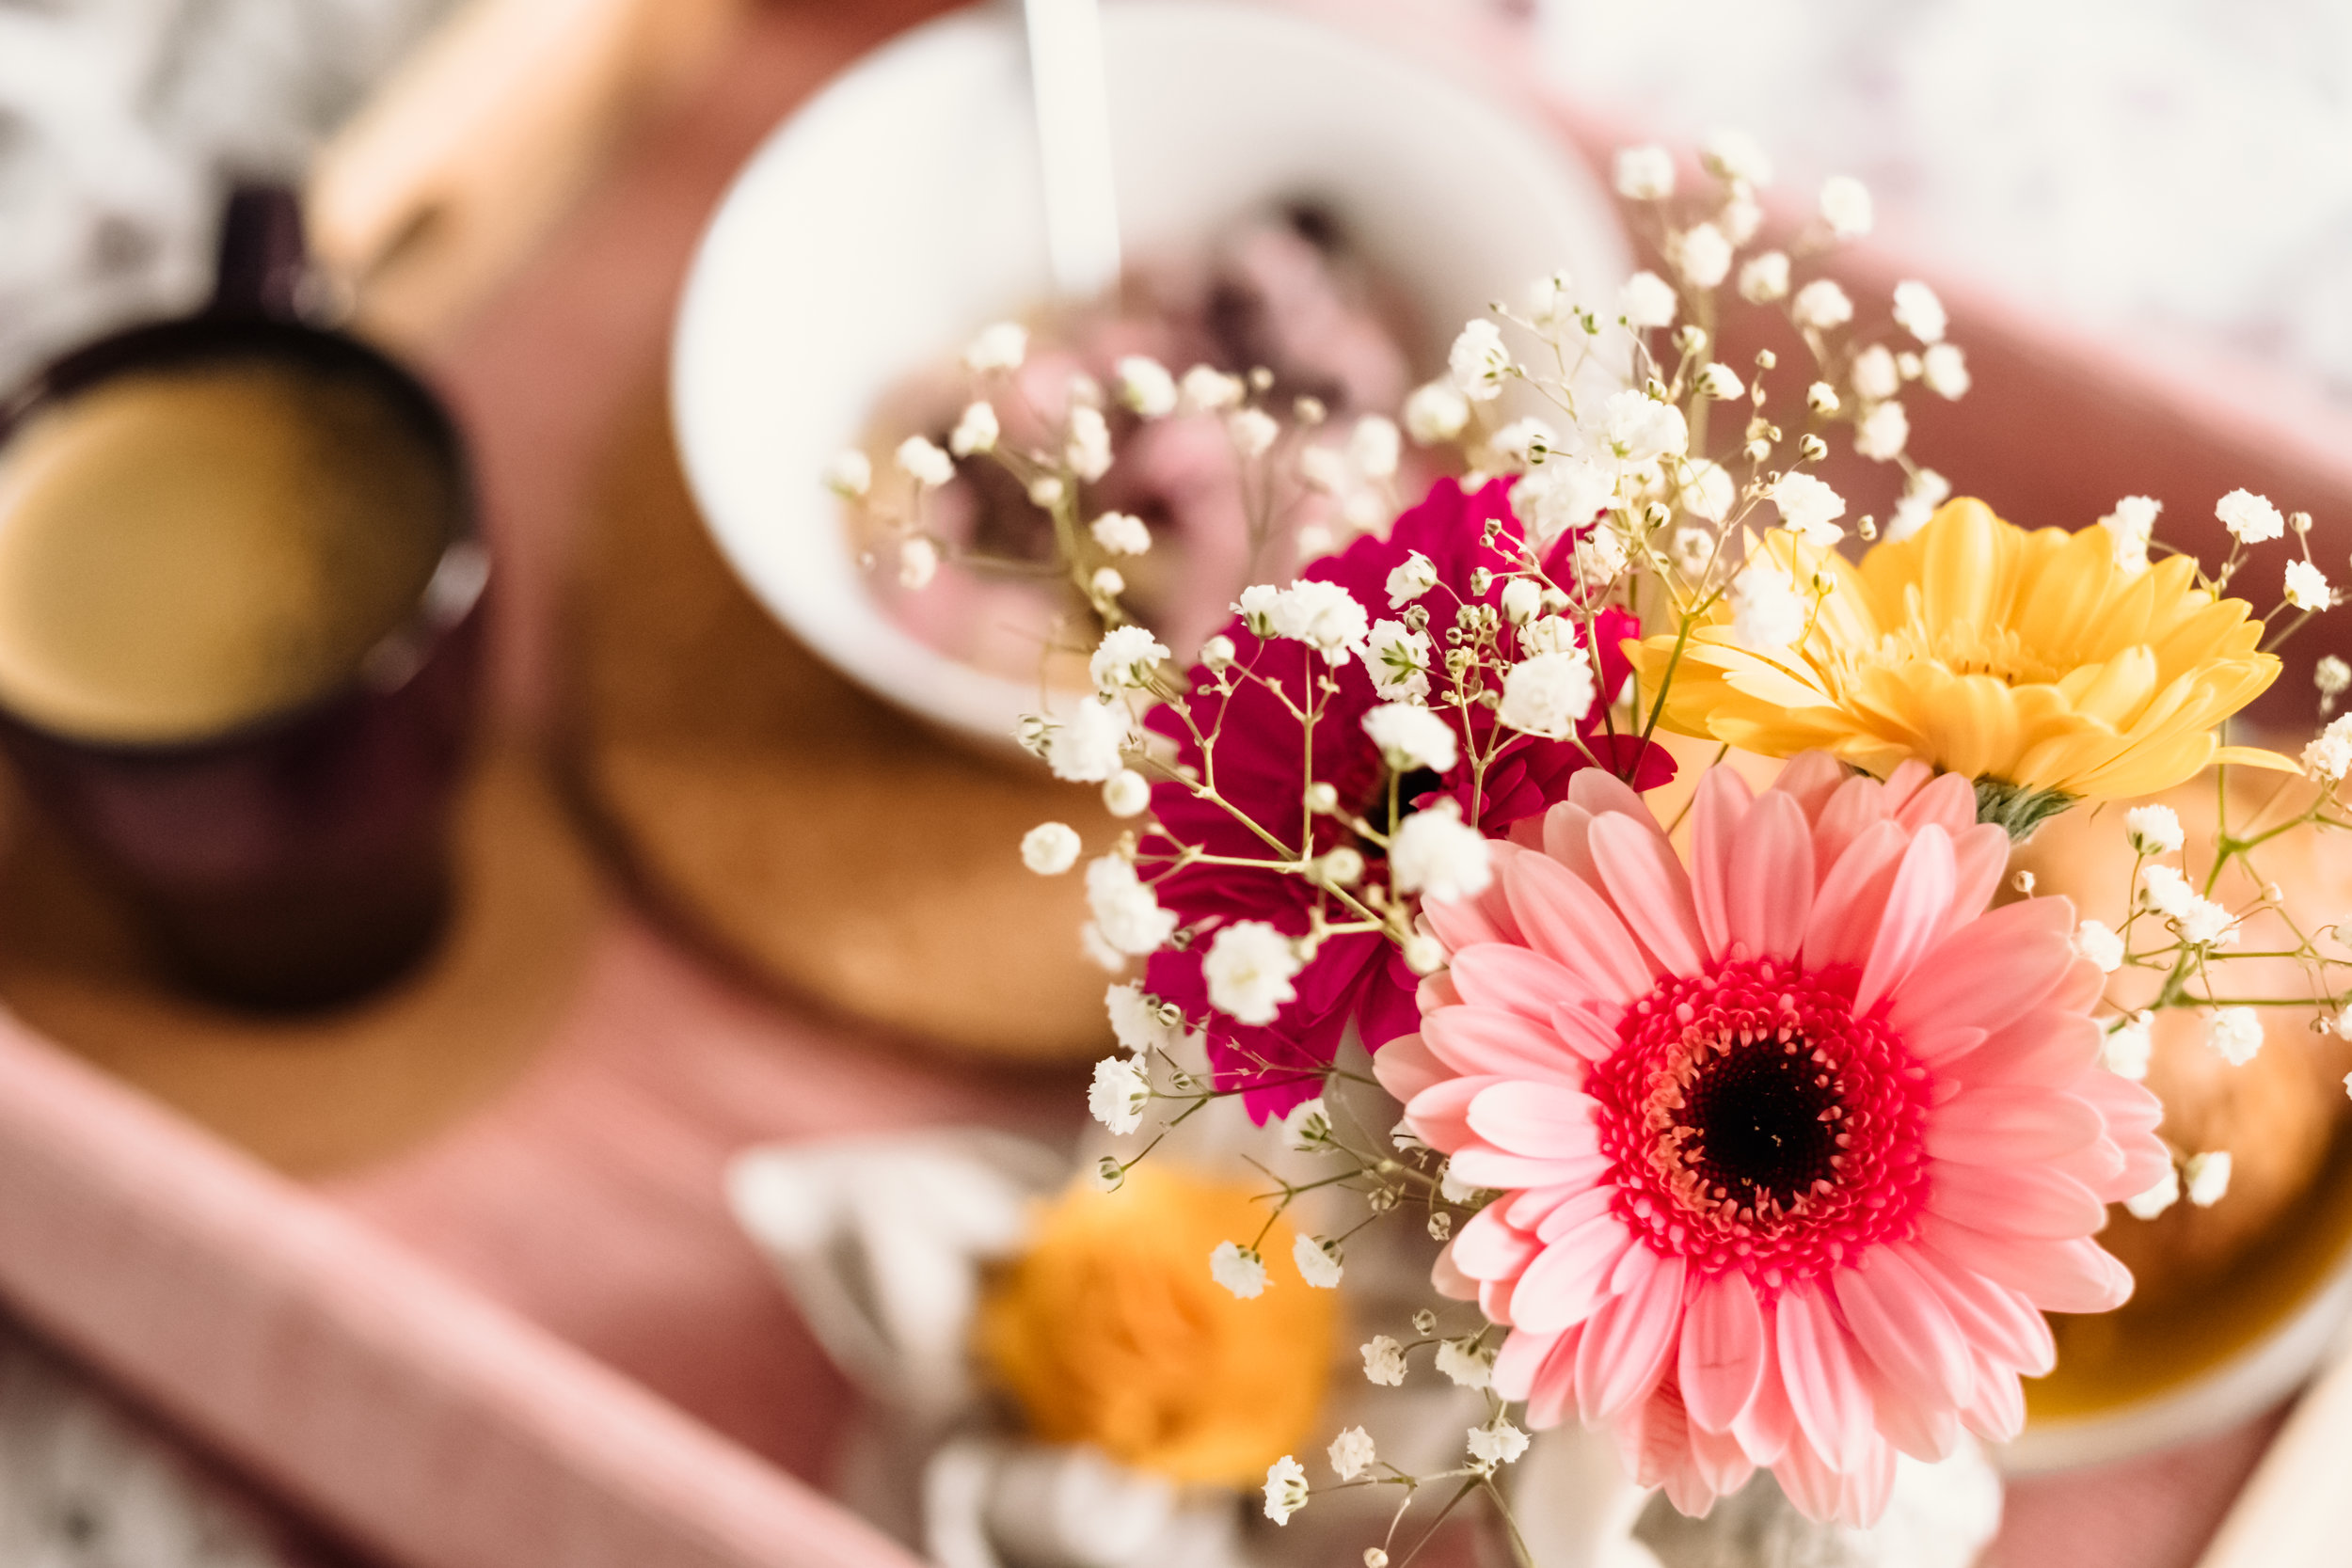 Tray with colorful flowers, coffee, and food.